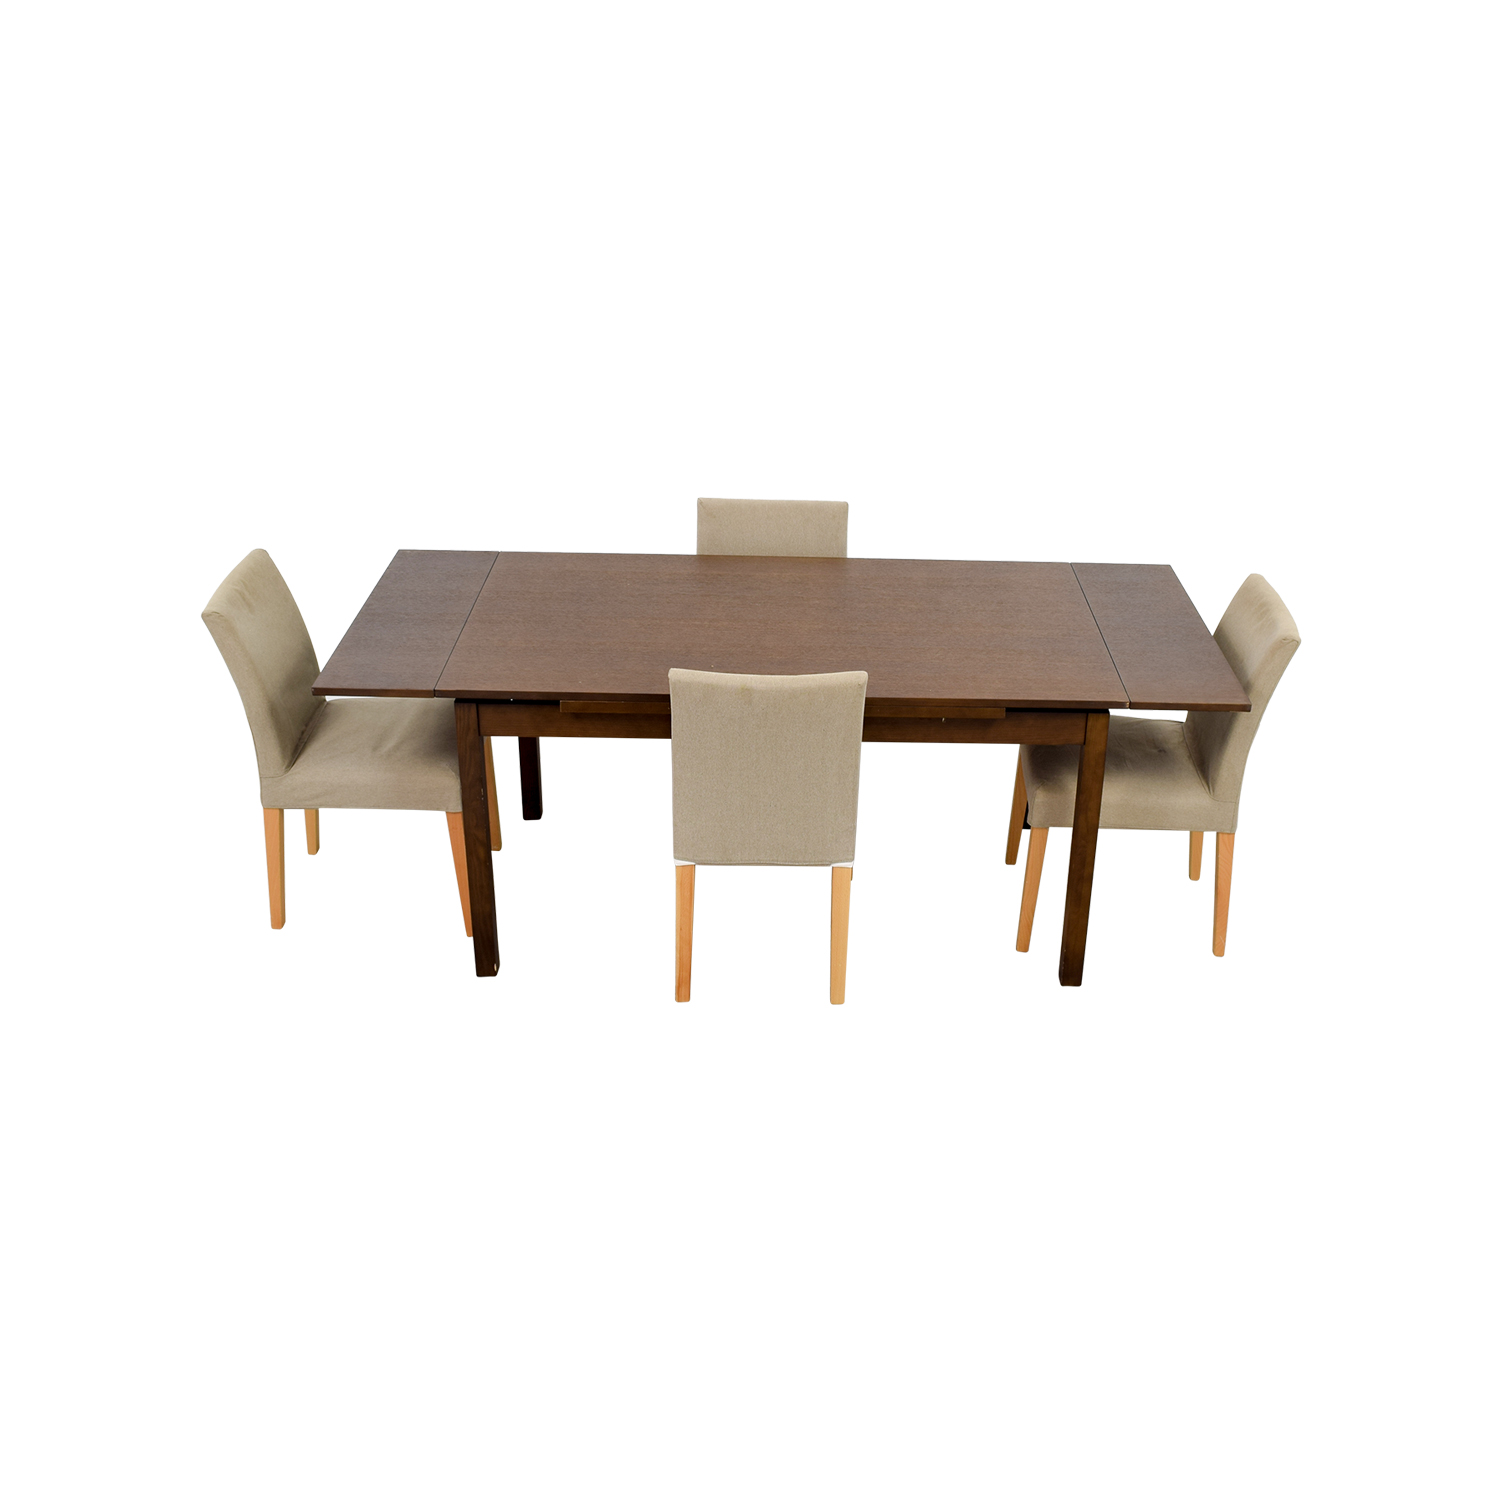 73% OFF - Muji Muji Extendable Dining Table with Chairs / Tables